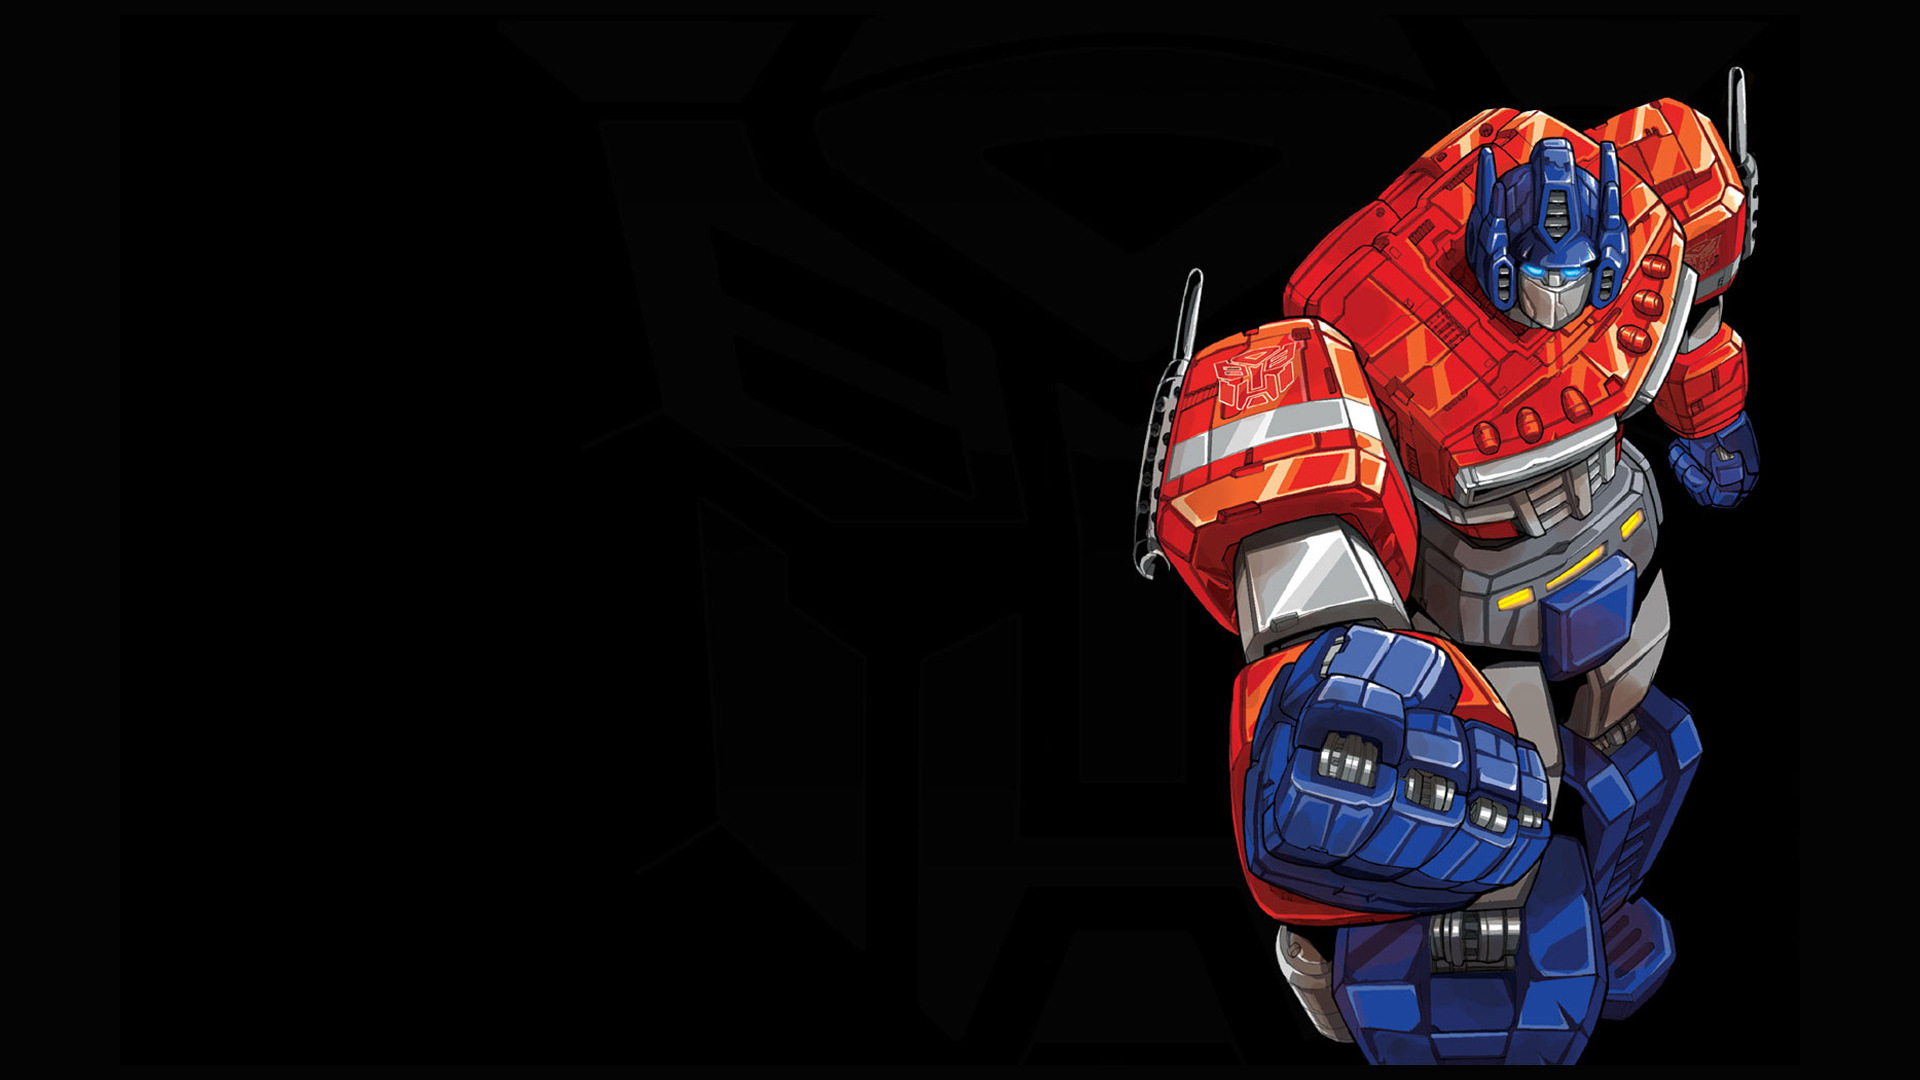 Transformers backgrounds pictures images - Transformers prime wallpaper ...